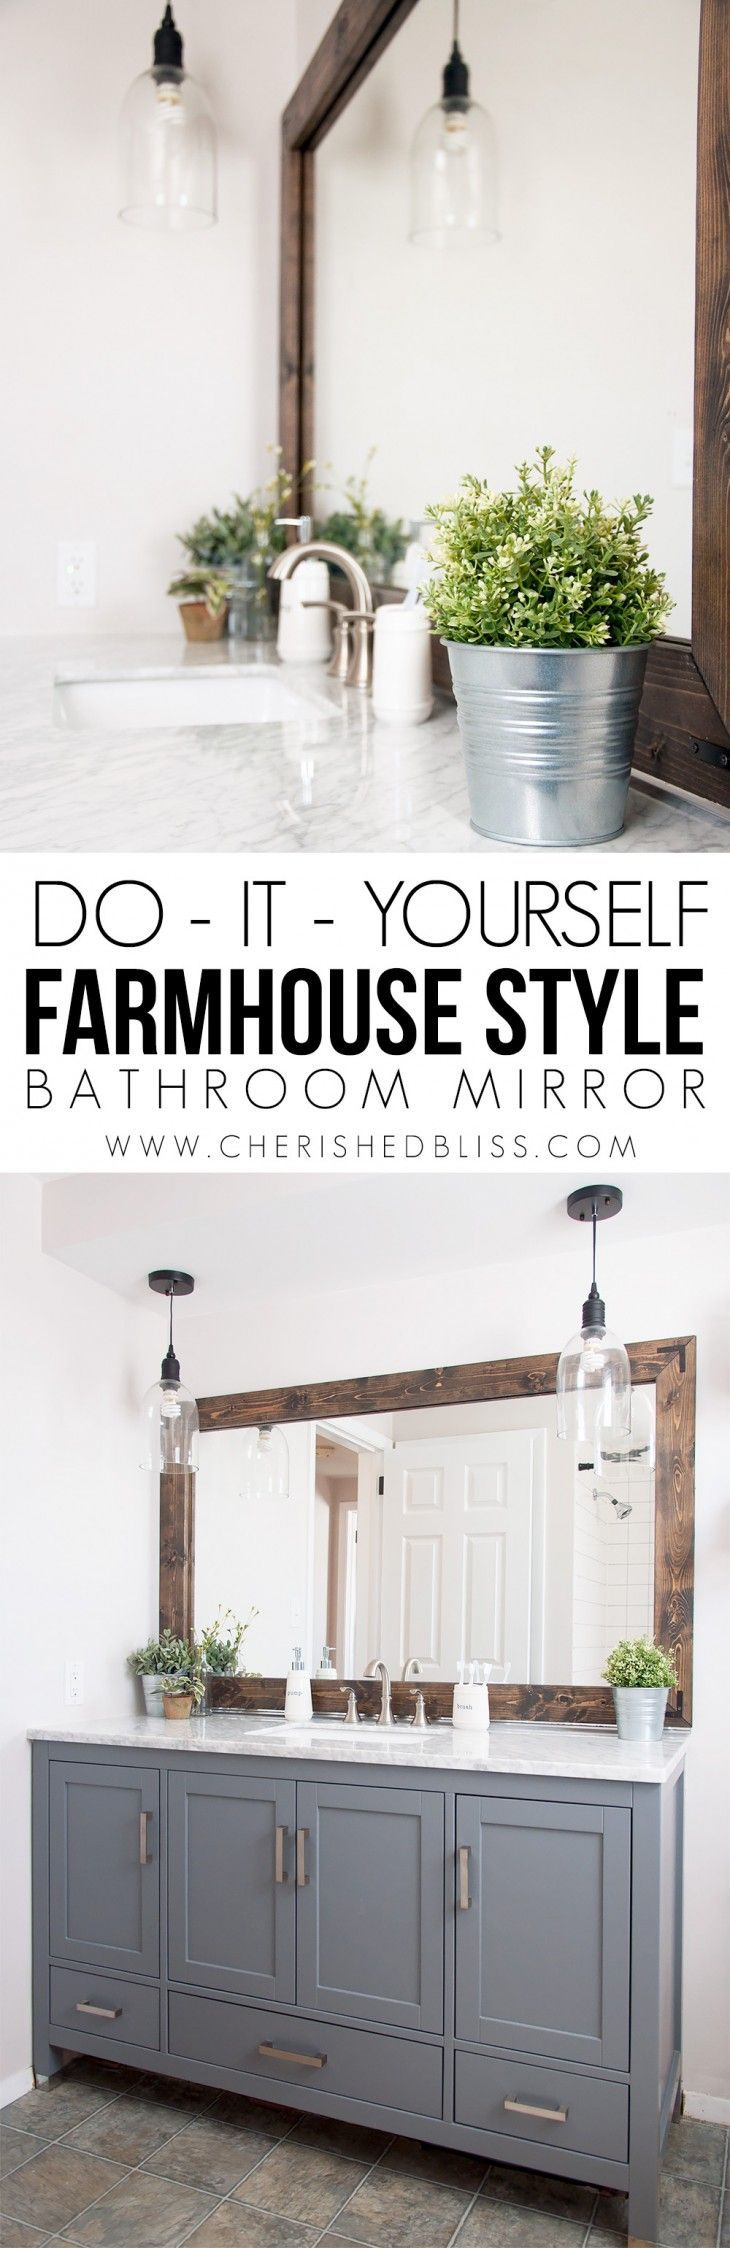 15 Cozy Farmhouse Diy Decor Ideas 429